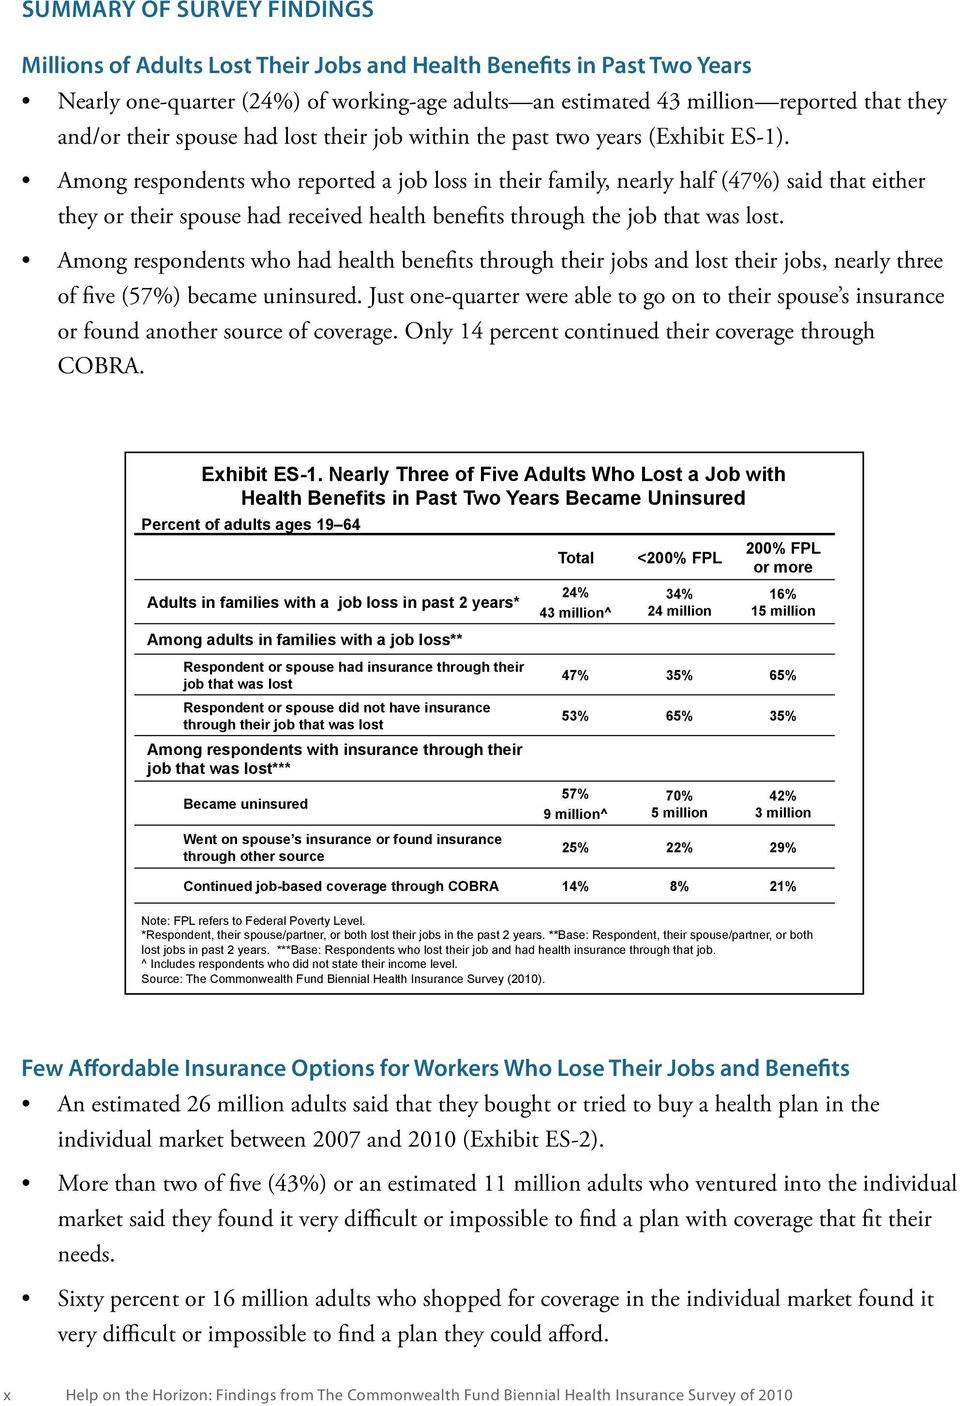 Among respondents who reported a job loss in their family, nearly half (47%) said that either they or their spouse had received health benefits through the job that was lost.